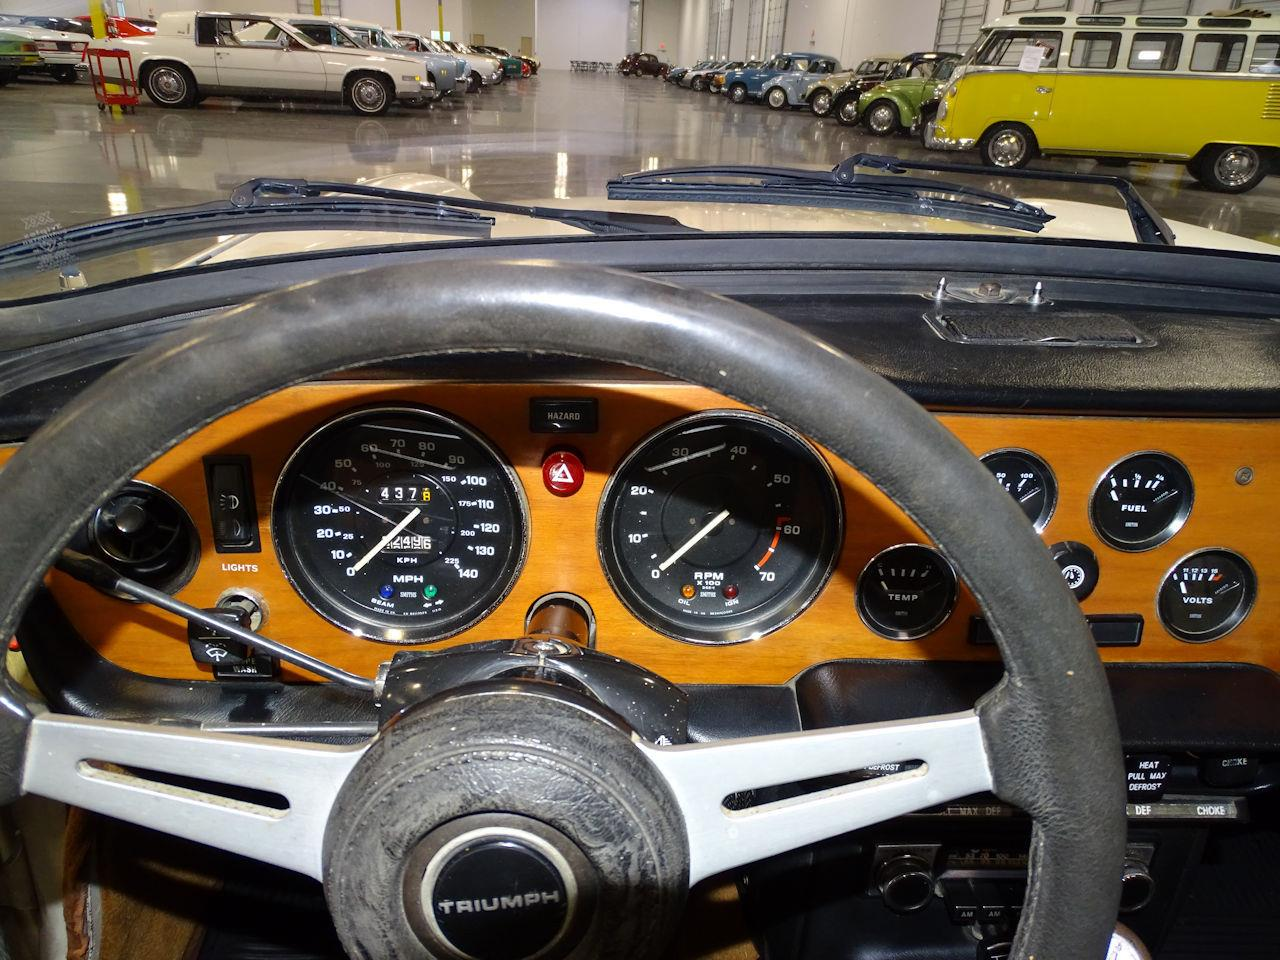 Large Picture of '74 Triumph TR6 located in Arizona Offered by Gateway Classic Cars - Scottsdale - MCYM